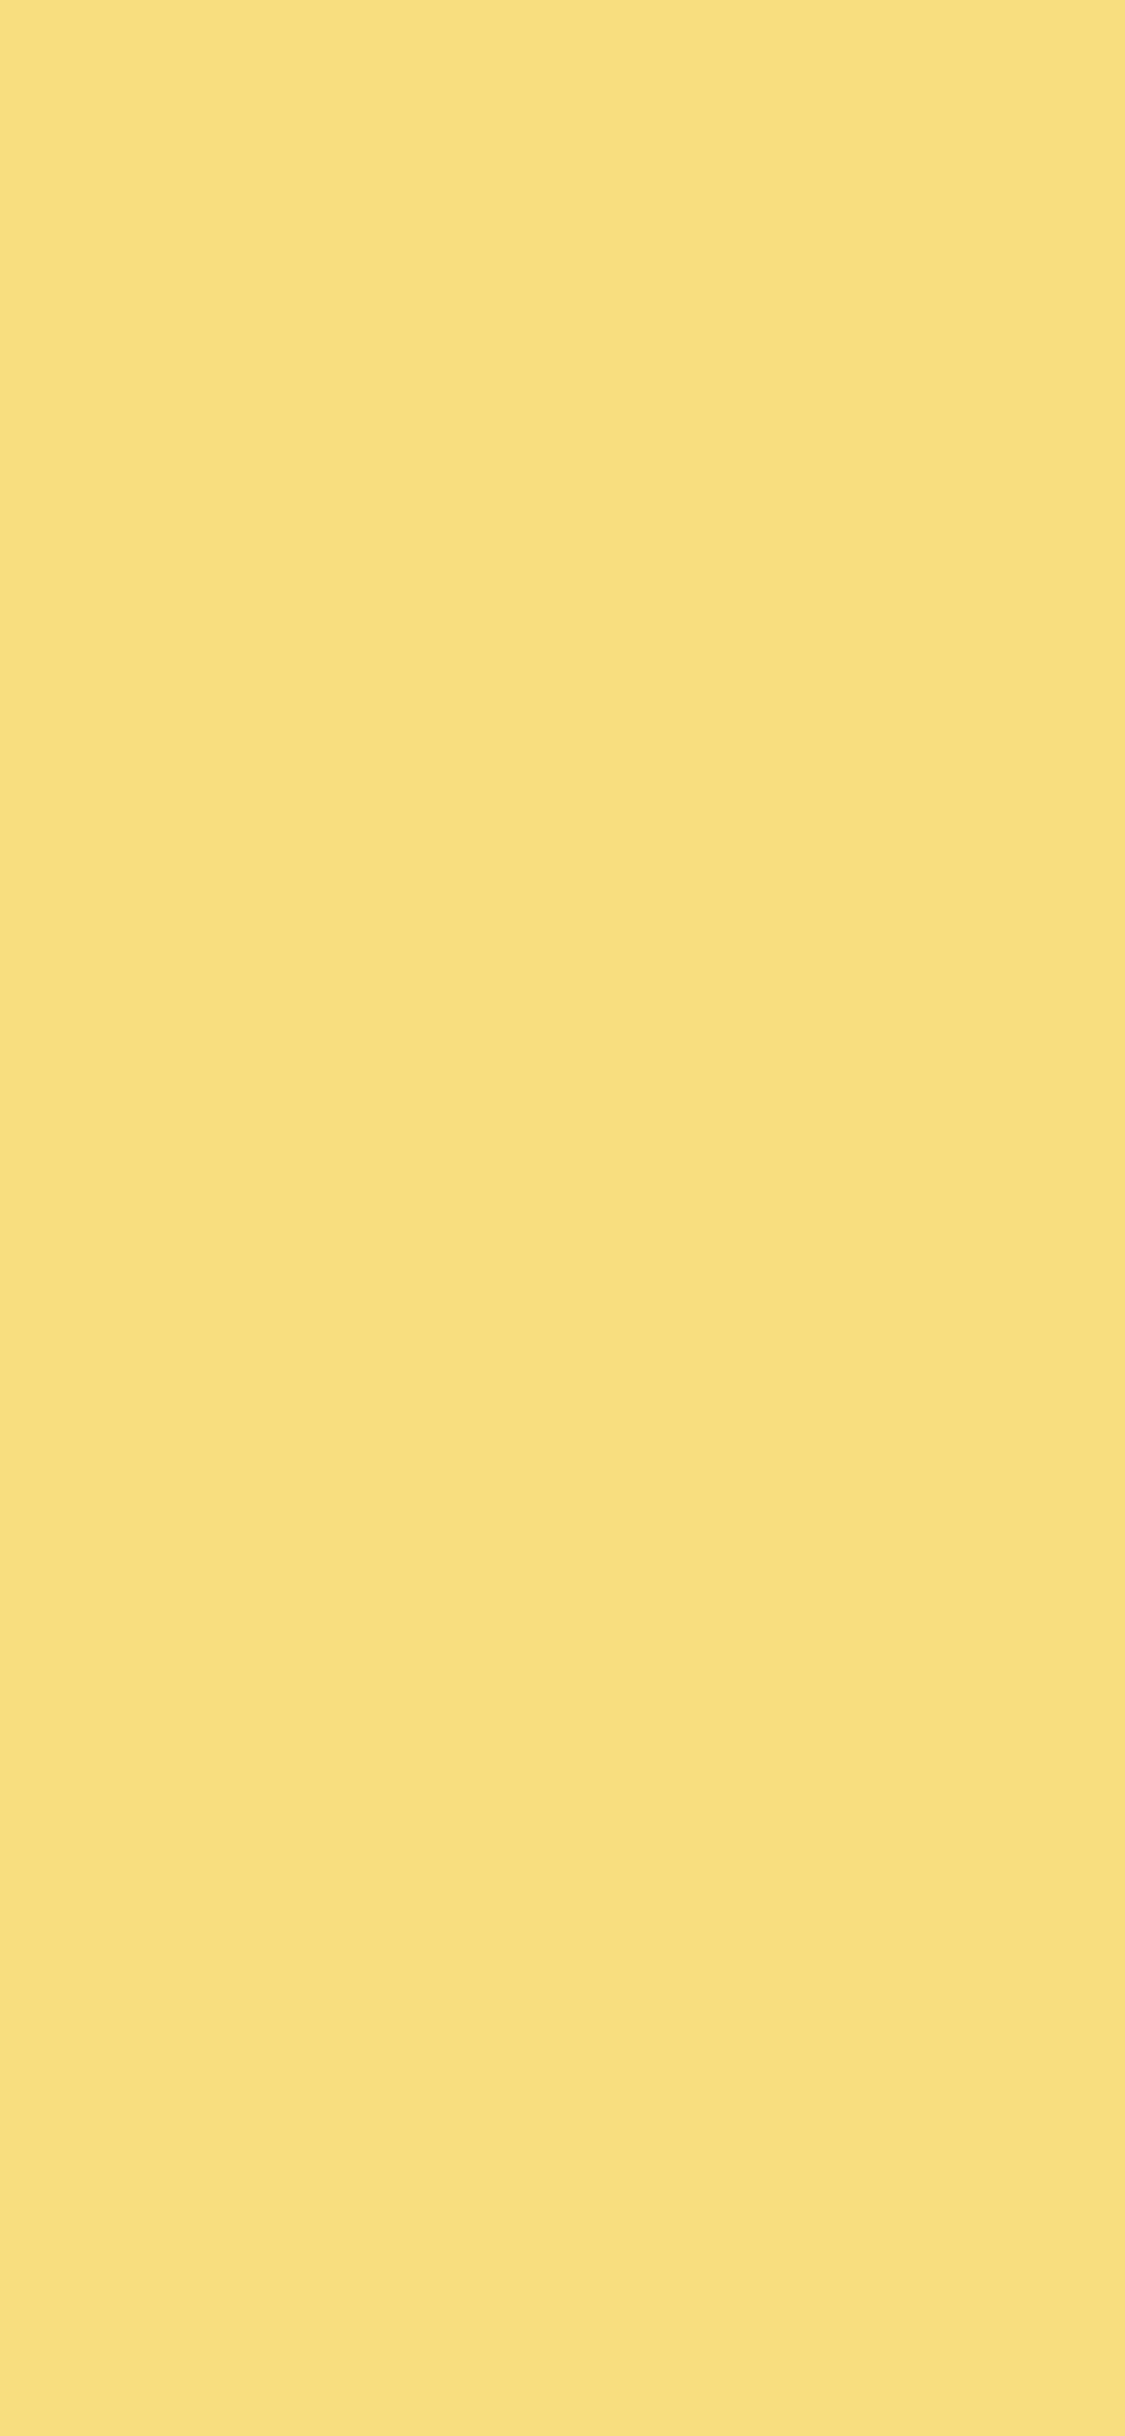 1125x2436 Mellow Yellow Solid Color Background